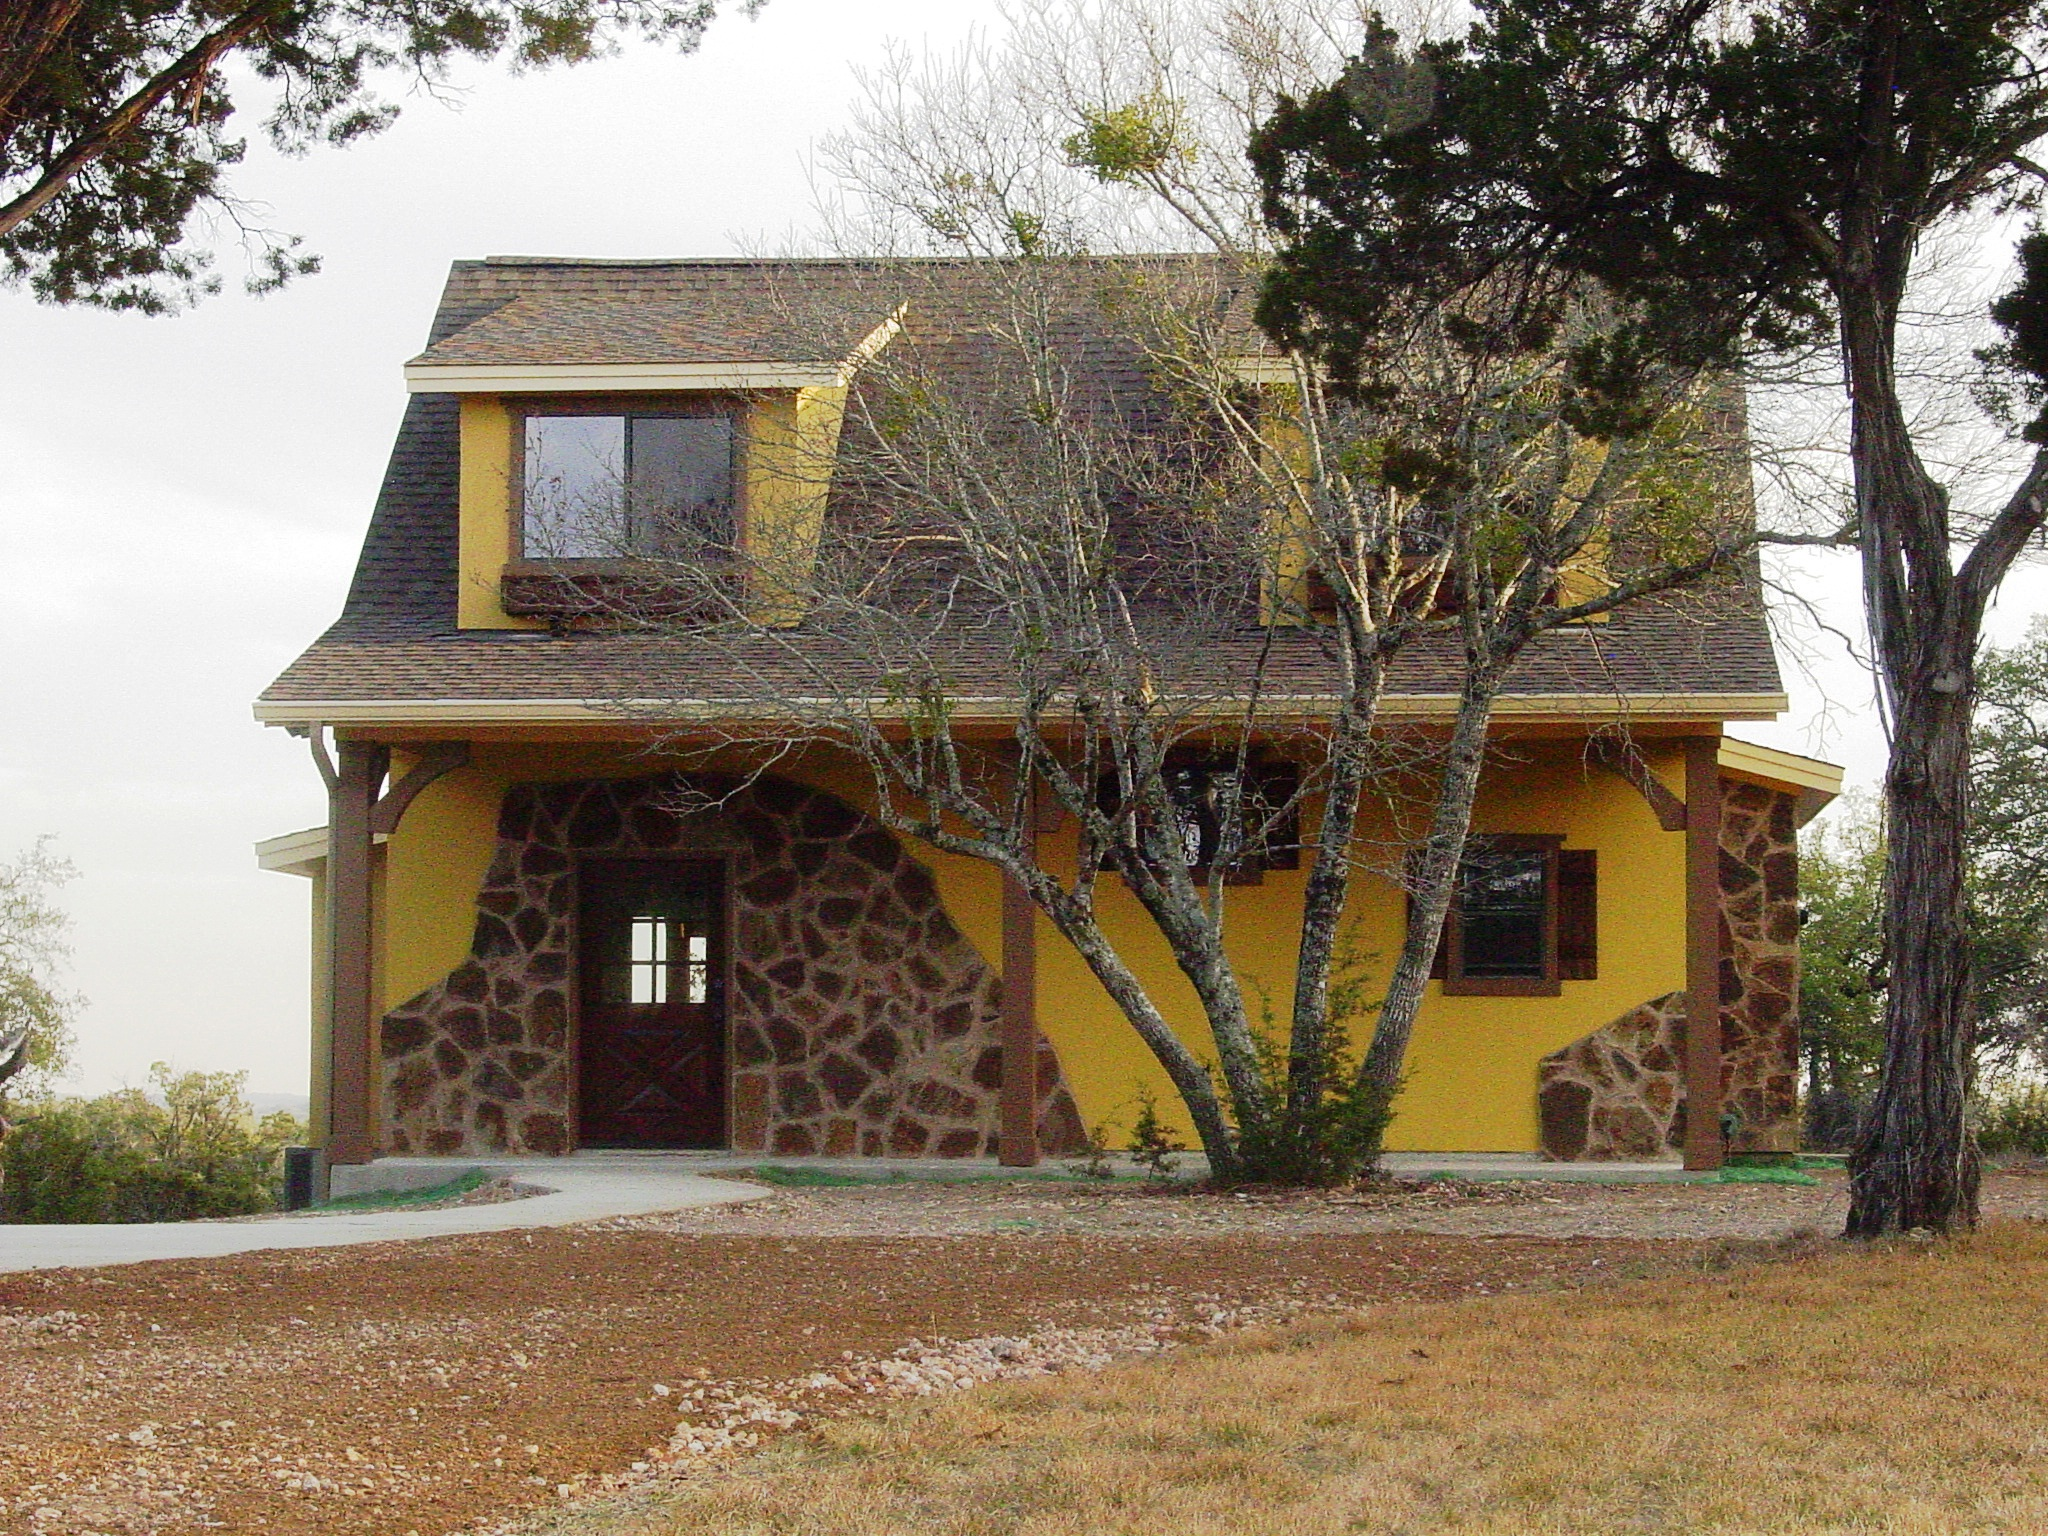 Guest Cottages - See some in-law units, AirBNB, Cottages